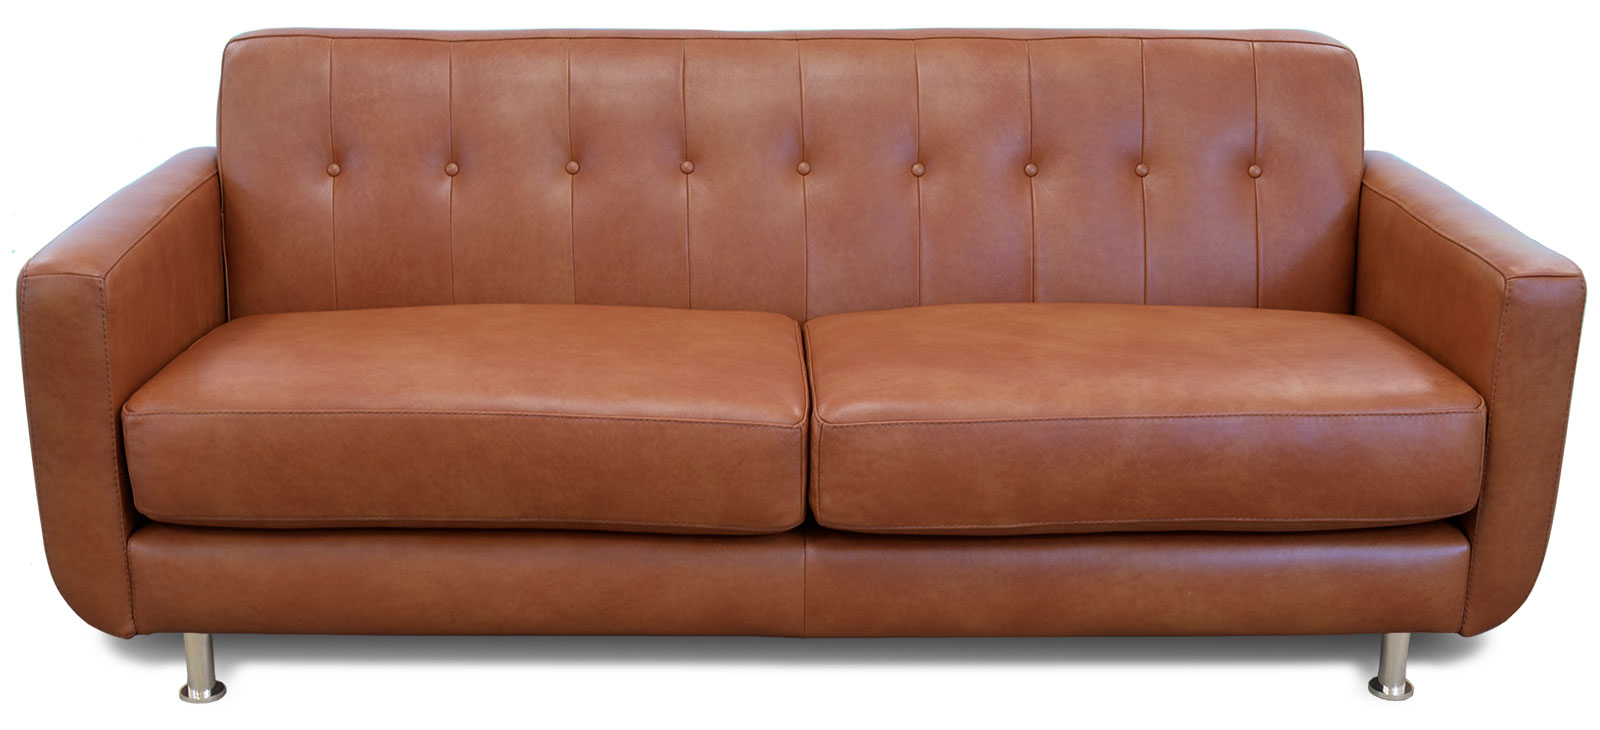 2 cushion sofa down cushion sofa foter thesofa for Sofa company